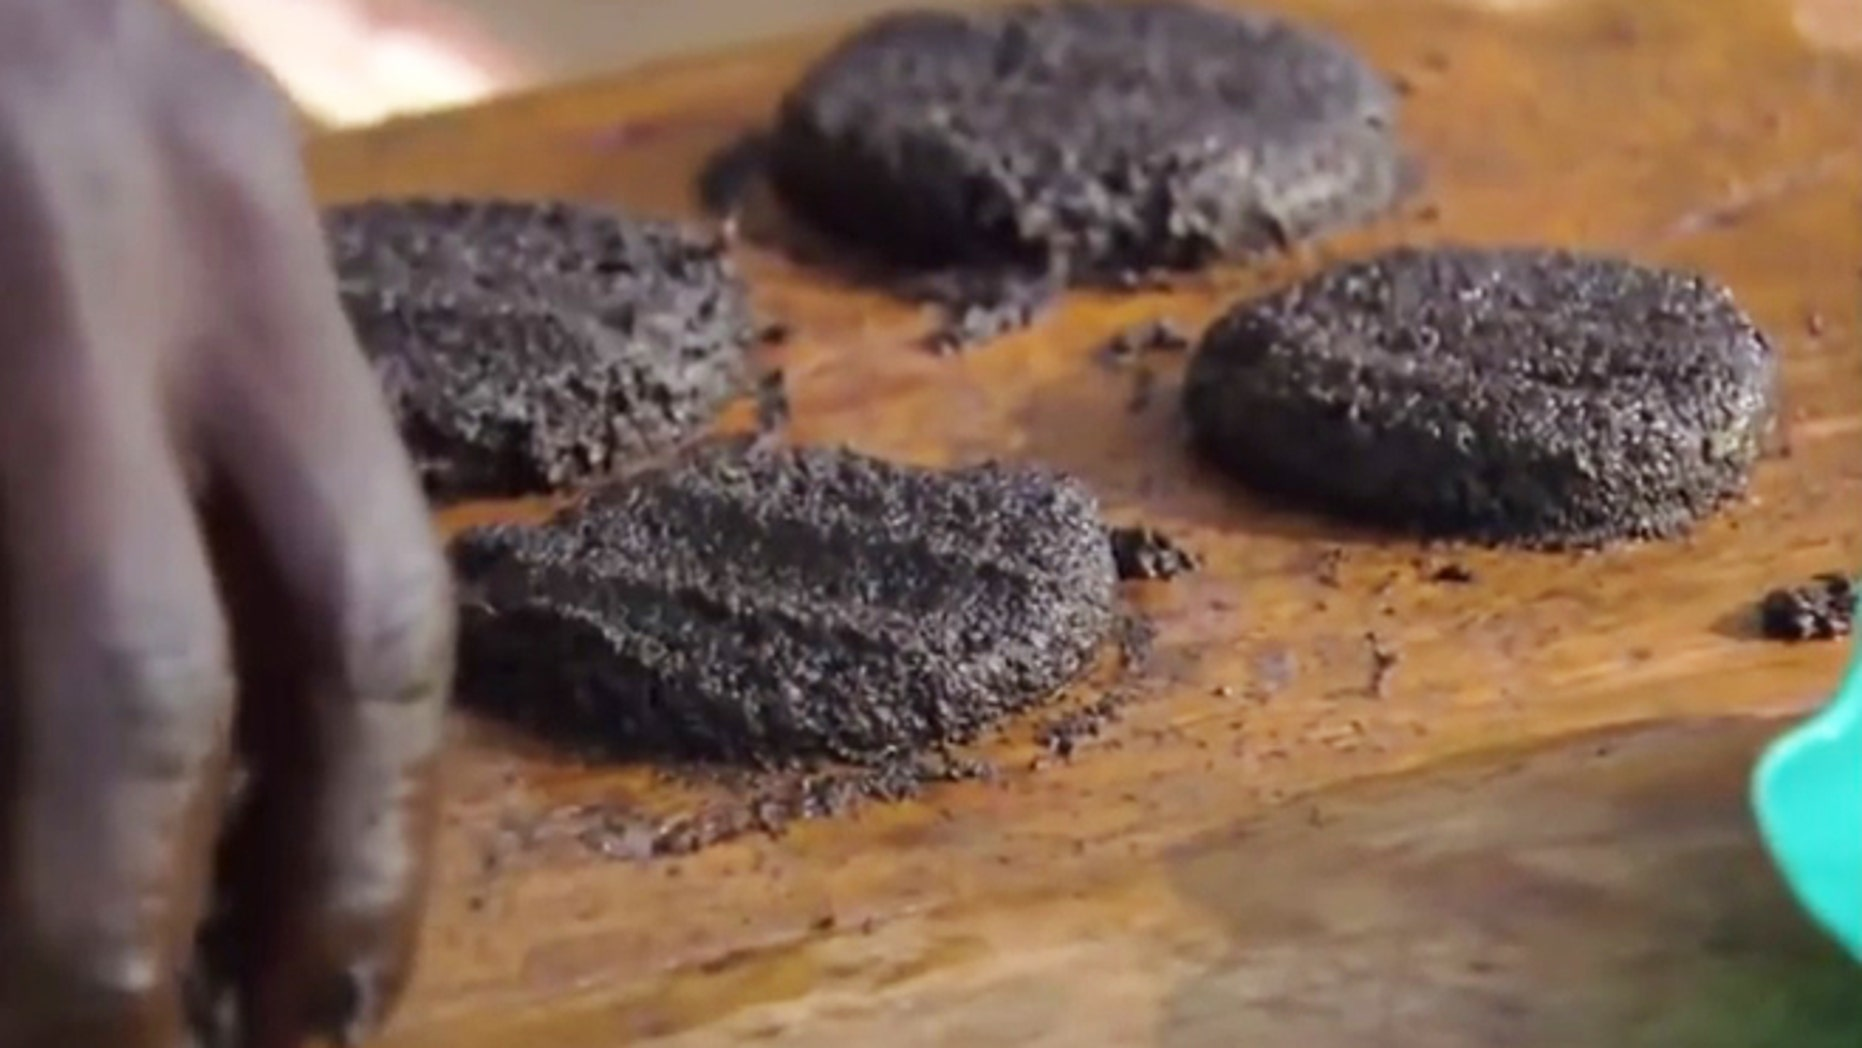 Making burgers from mashed up flies.